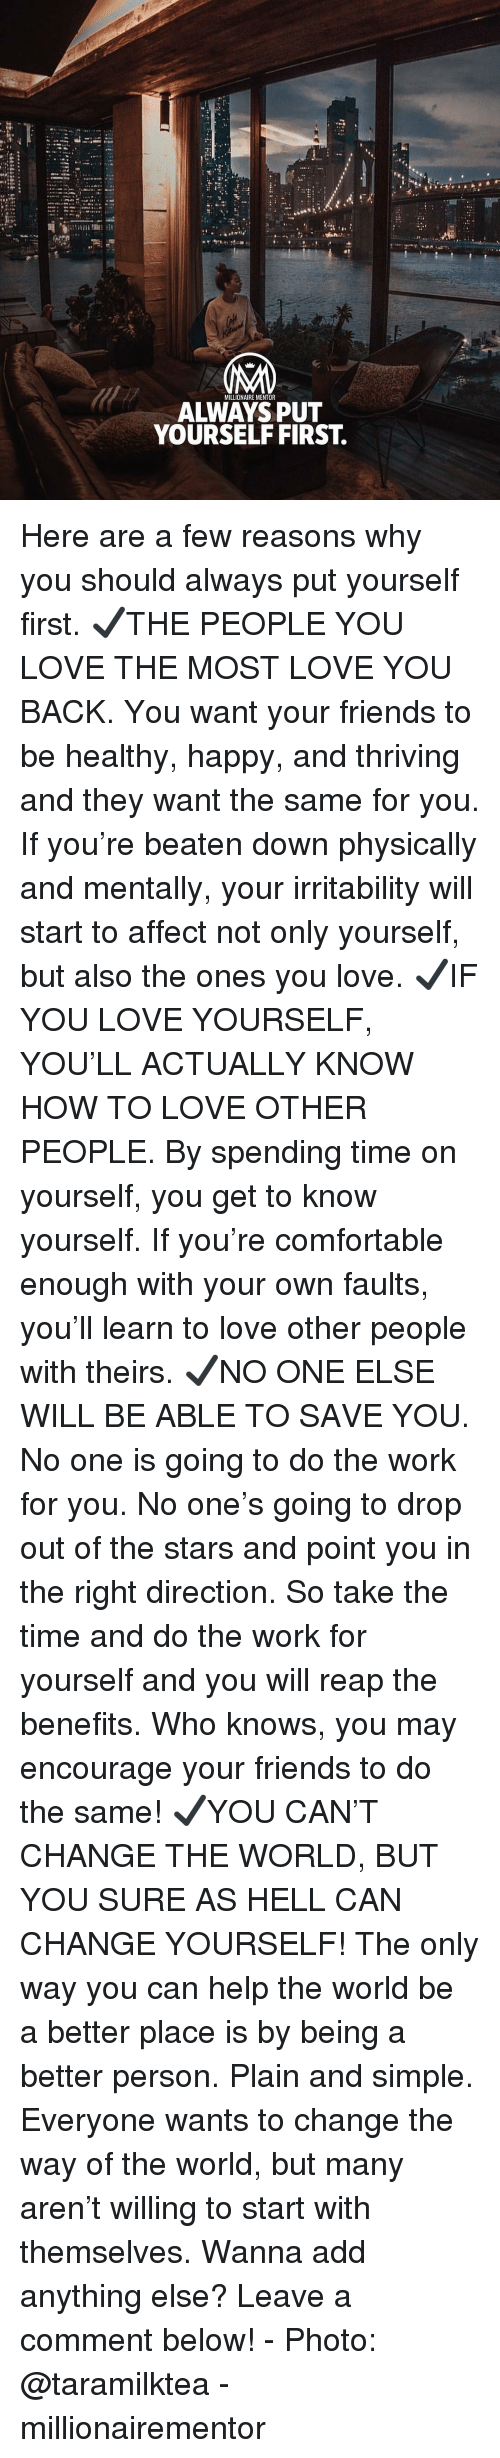 Do The Work: NM  MILLIONAIRE MENTOR  ALWAYS PUT  YOURSELF FIRST. Here are a few reasons why you should always put yourself first. ✔️THE PEOPLE YOU LOVE THE MOST LOVE YOU BACK. You want your friends to be healthy, happy, and thriving and they want the same for you. If you're beaten down physically and mentally, your irritability will start to affect not only yourself, but also the ones you love. ✔️IF YOU LOVE YOURSELF, YOU'LL ACTUALLY KNOW HOW TO LOVE OTHER PEOPLE. By spending time on yourself, you get to know yourself. If you're comfortable enough with your own faults, you'll learn to love other people with theirs. ✔️NO ONE ELSE WILL BE ABLE TO SAVE YOU. No one is going to do the work for you. No one's going to drop out of the stars and point you in the right direction. So take the time and do the work for yourself and you will reap the benefits. Who knows, you may encourage your friends to do the same! ✔️YOU CAN'T CHANGE THE WORLD, BUT YOU SURE AS HELL CAN CHANGE YOURSELF! The only way you can help the world be a better place is by being a better person. Plain and simple. Everyone wants to change the way of the world, but many aren't willing to start with themselves. Wanna add anything else? Leave a comment below! - Photo: @taramilktea - millionairementor